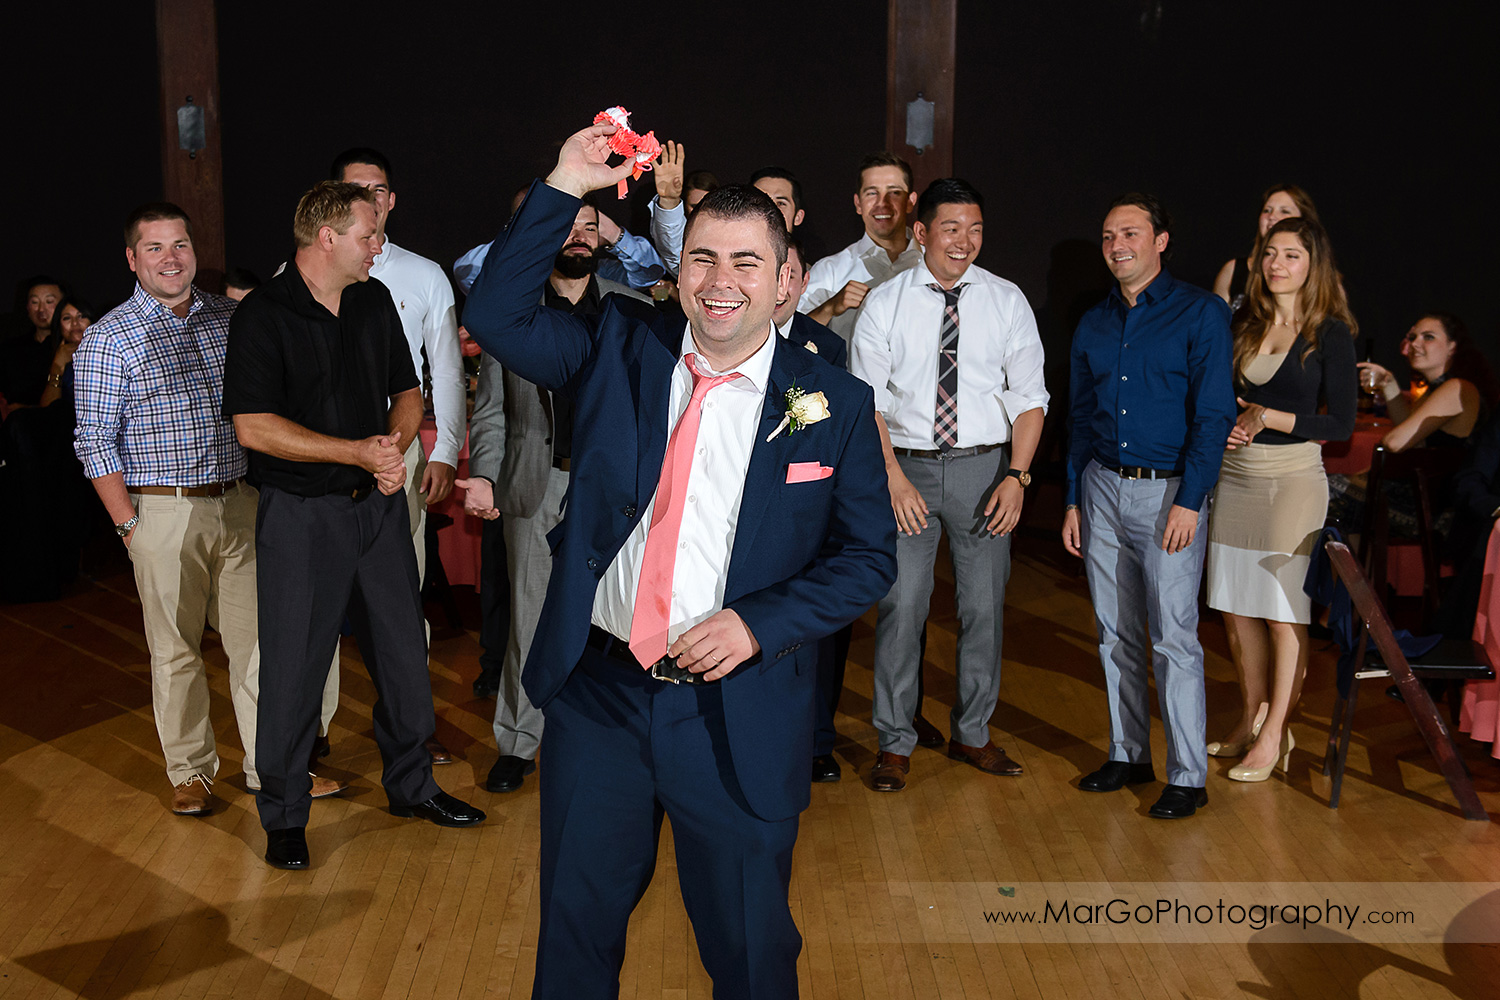 groom tossing garter during wedding reception at Saratoga Foothill Club